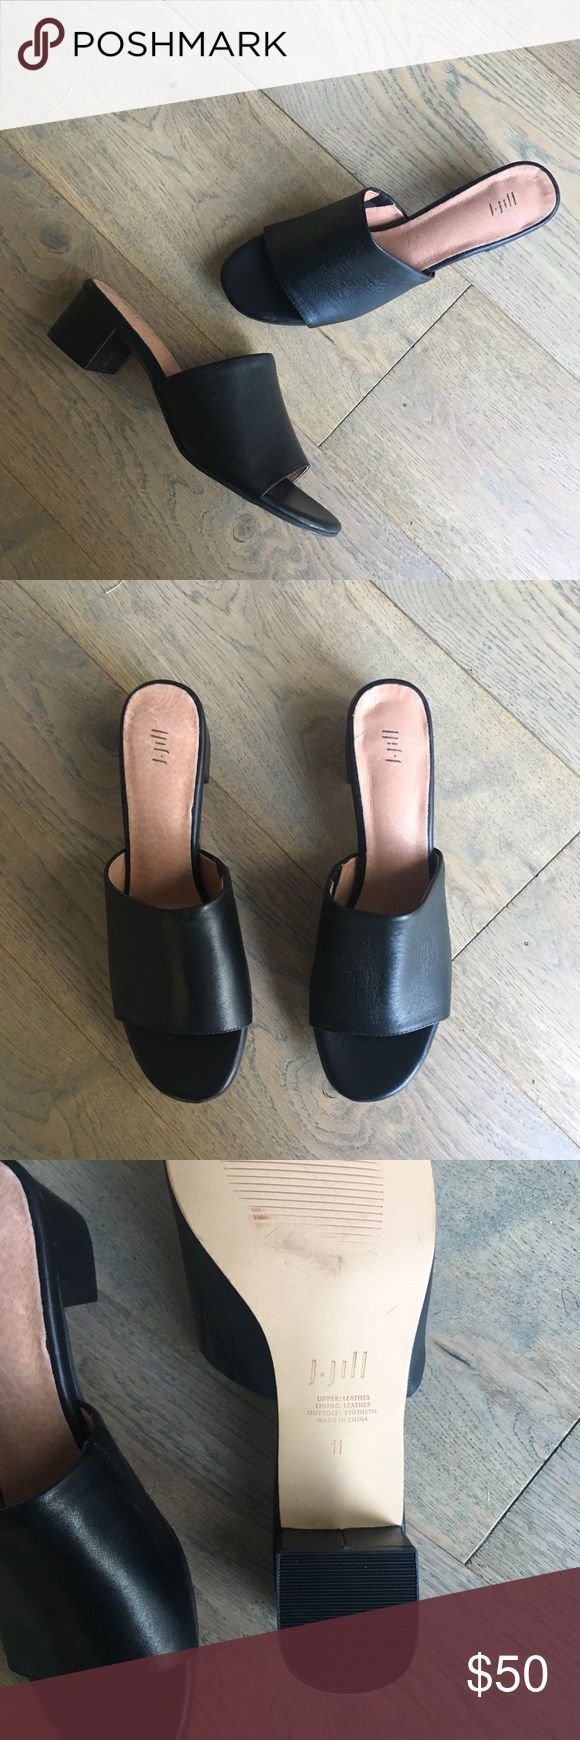 """NEW J.Jill Black Leather Block-Heel Slides J.Jill easy-to-wear leather slides have elastic insets on the sides for added comfort. Leather lining. Synthetic sole. 1 ¾"""" heel. Size 11 Shoes Heels"""